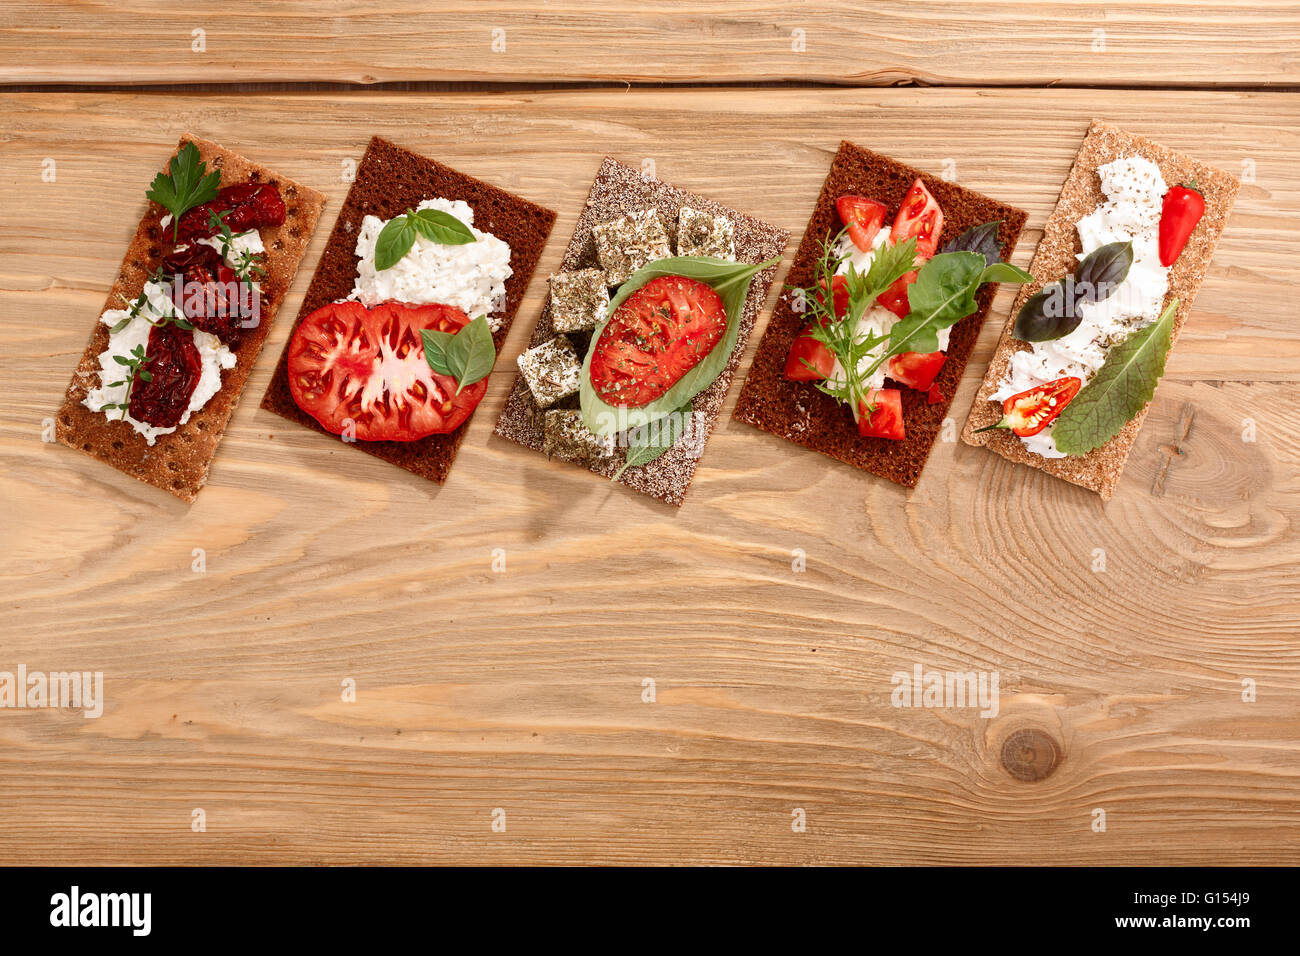 Different bread crisps (crispbread open-faced sandwiches) with both fresh and dried heirloom tomatoes, cream cheese - Stock Image